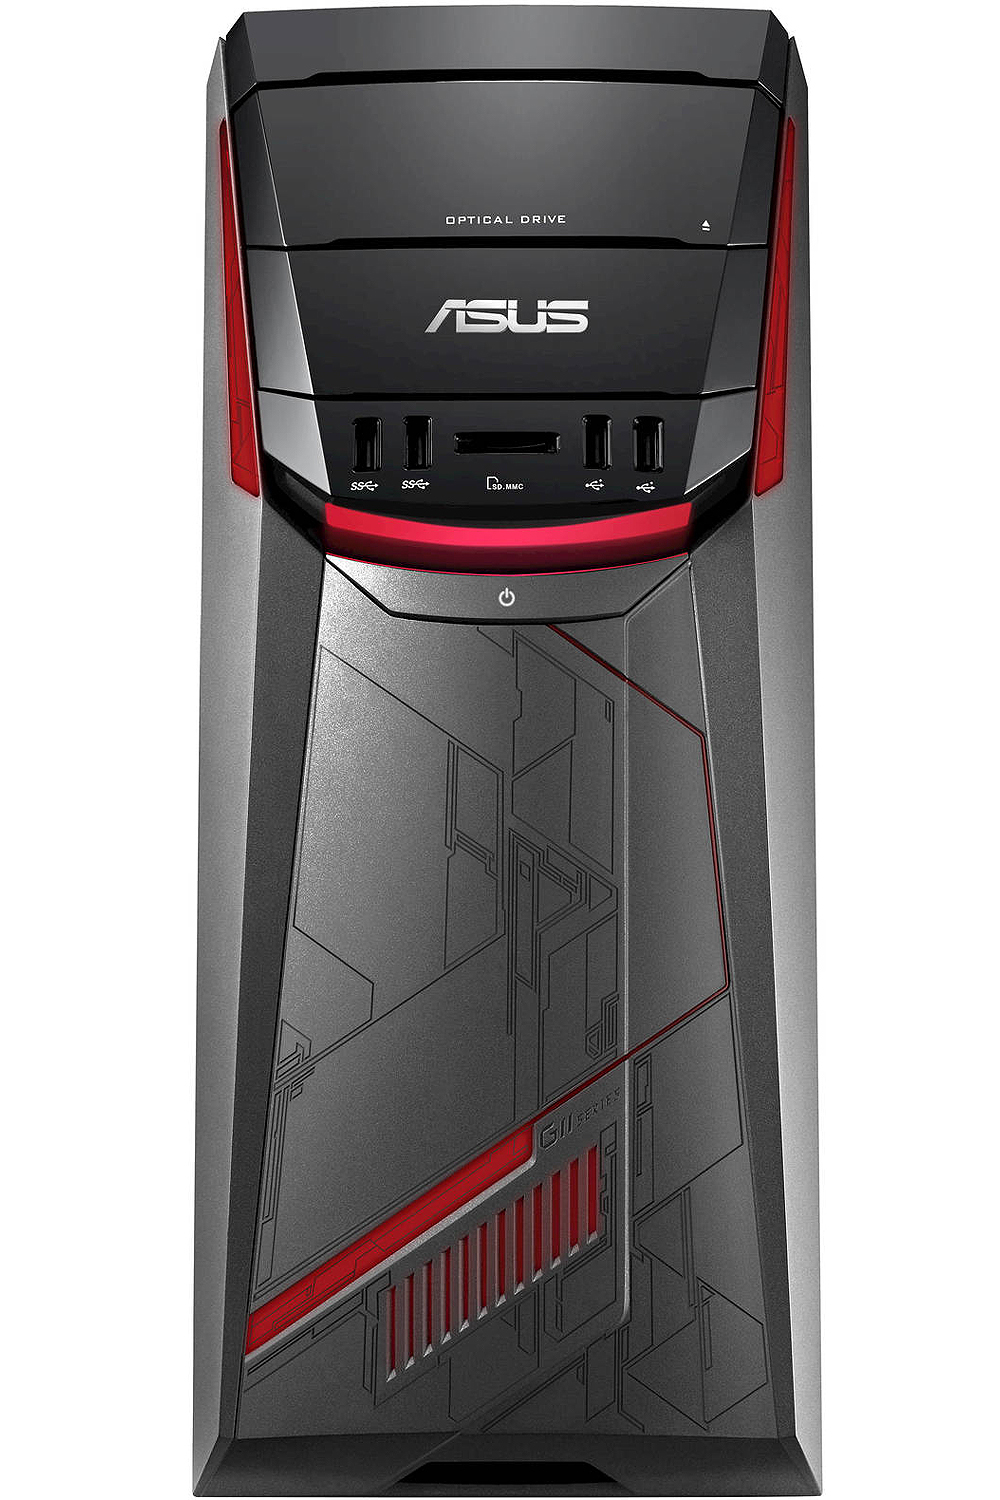 Asus G11CD Black Desktop Computer